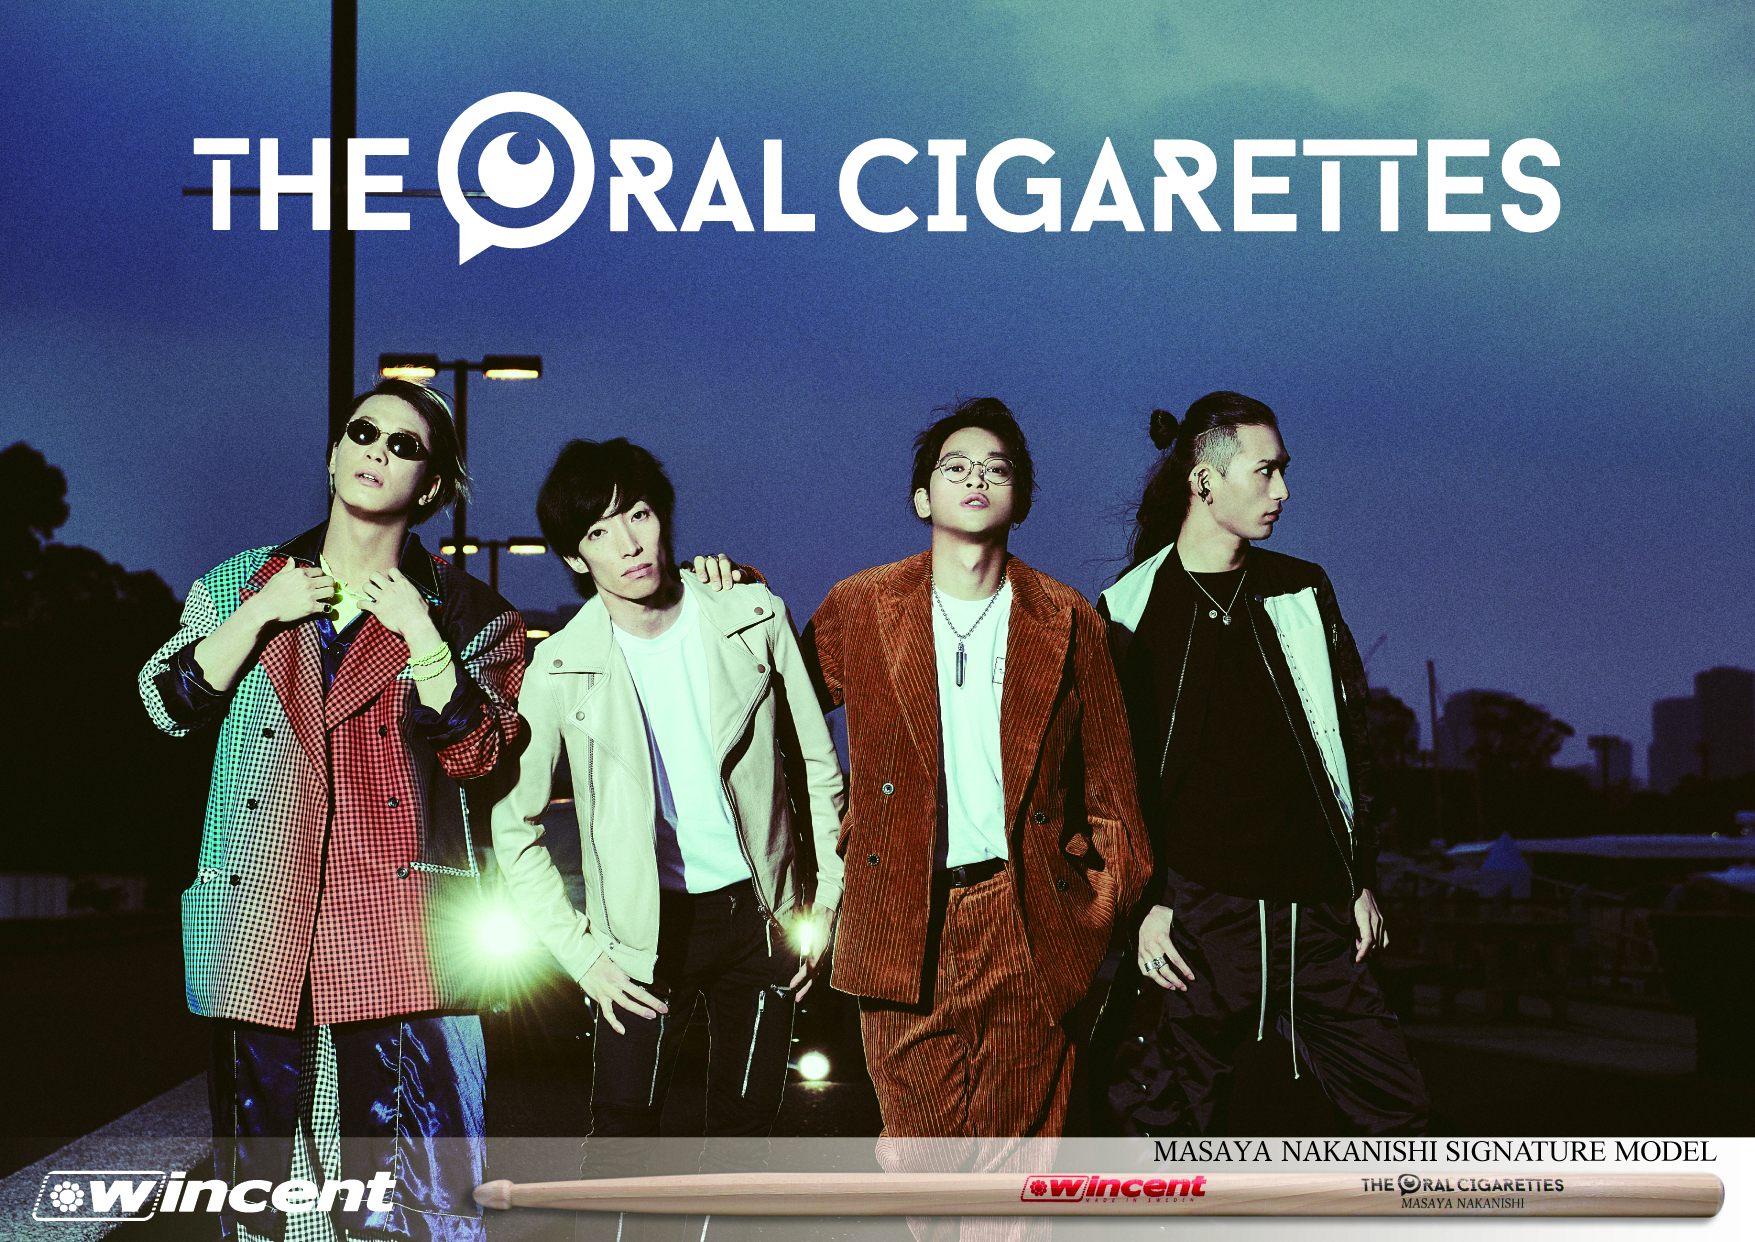 theoralcigarettes wincent